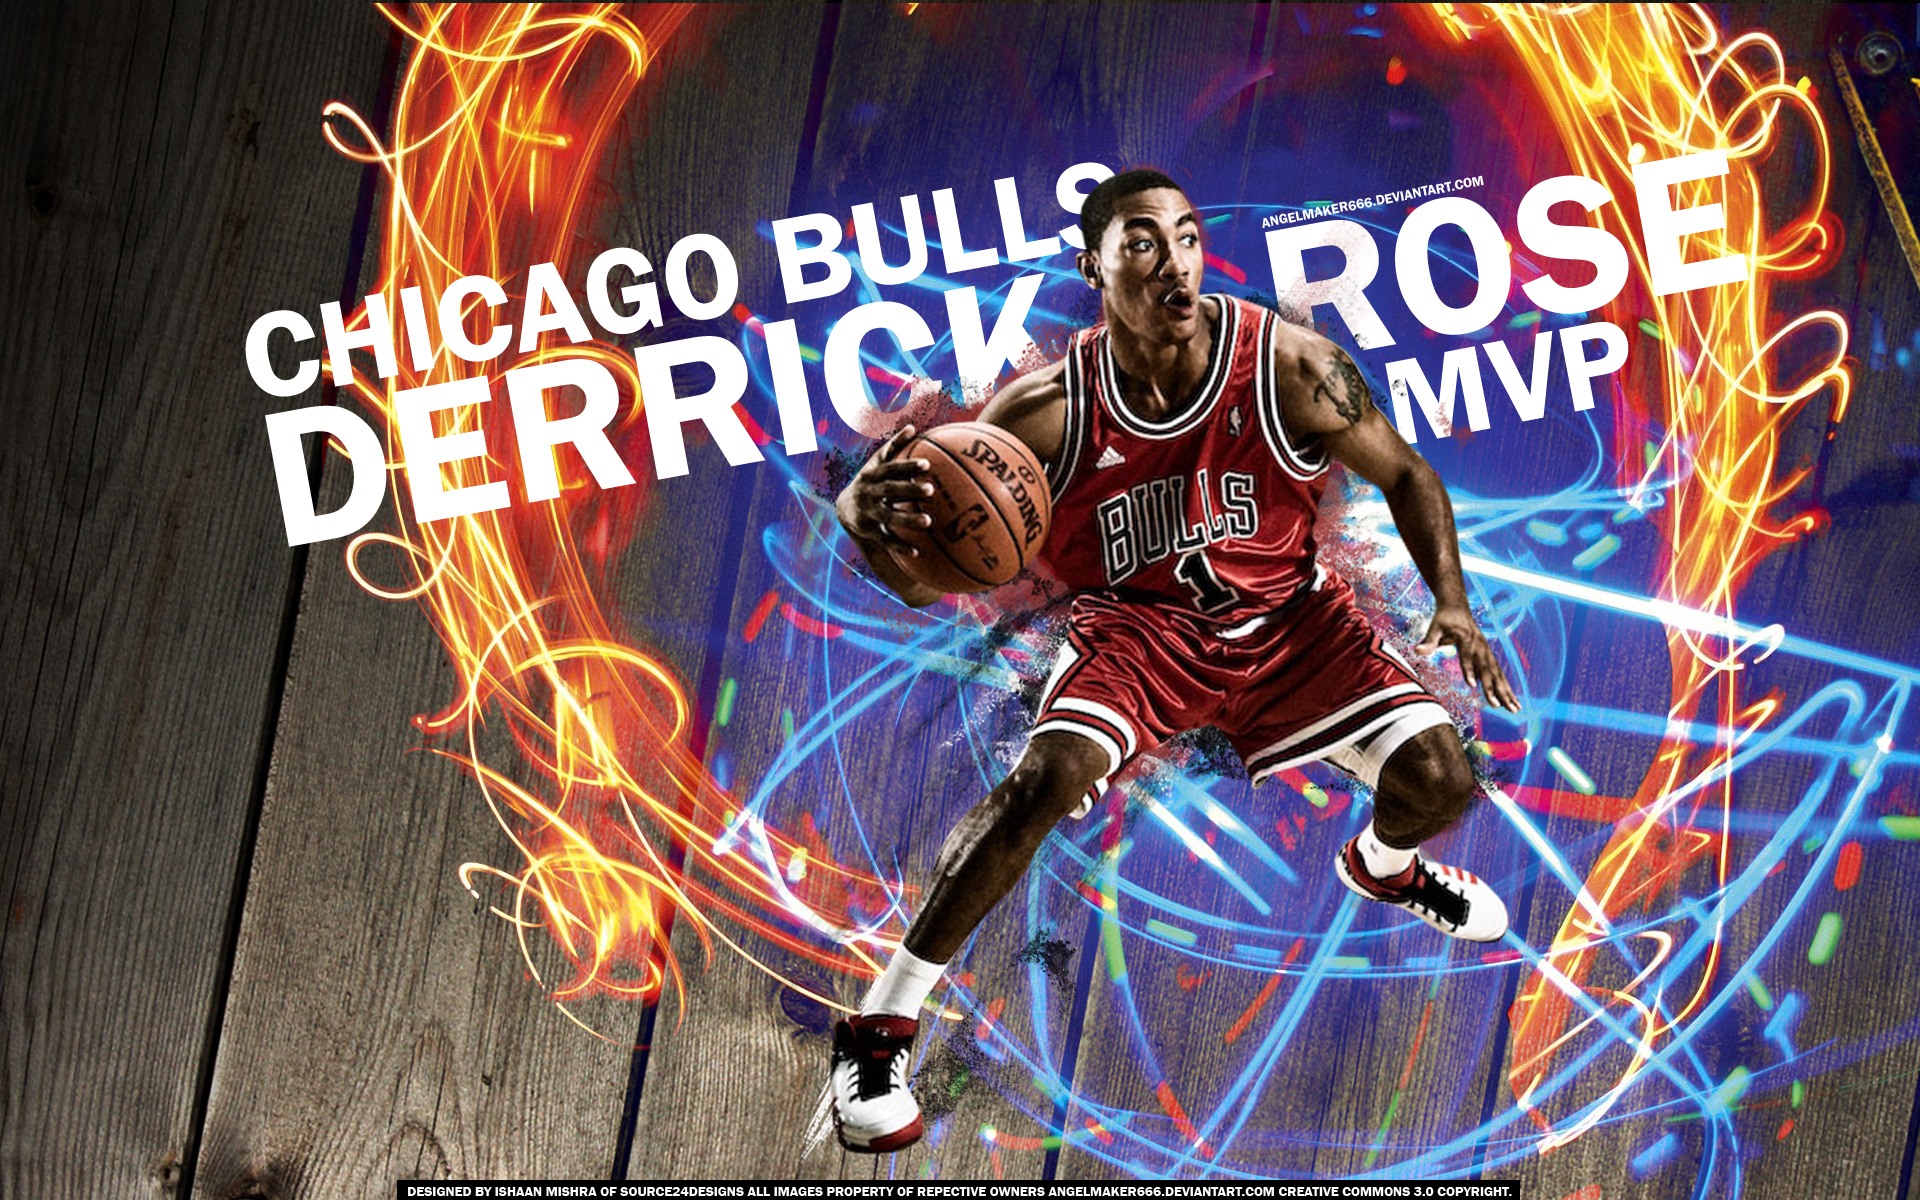 3ff090c8e2d8 Derrick Rose Dunk Wallpaper Hd Pictures to Pin on Pinterest .